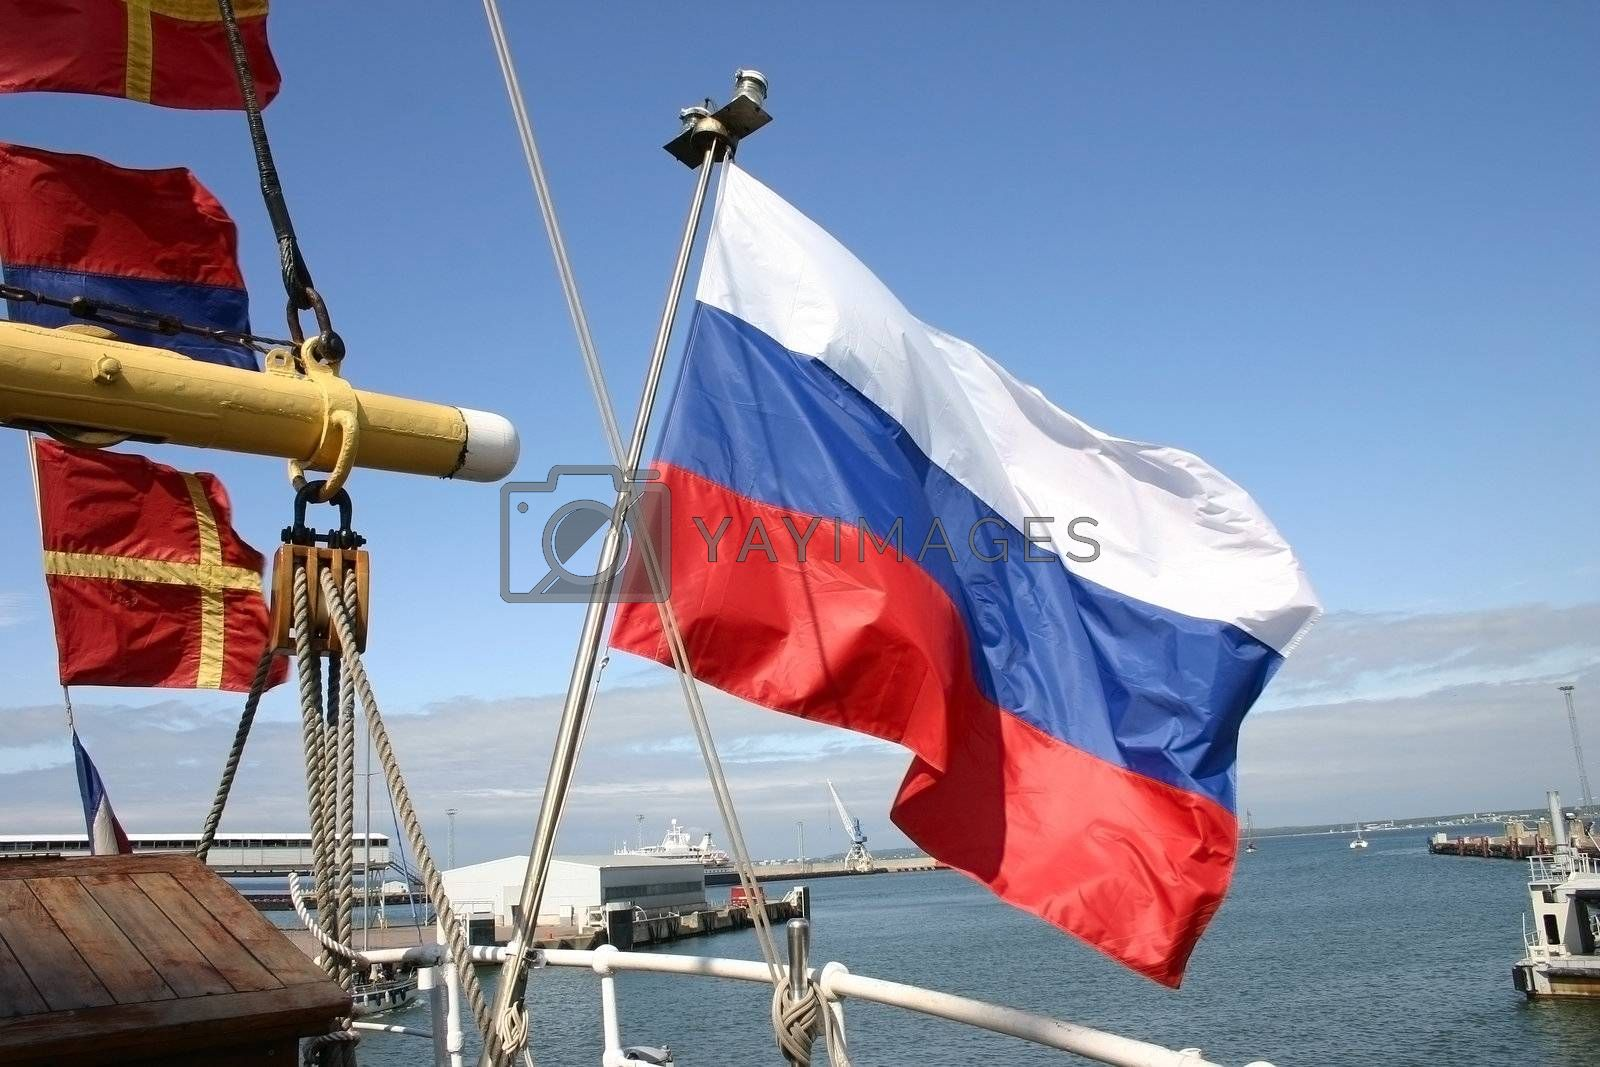 Russian flag of a sailing vessel against the sea in port